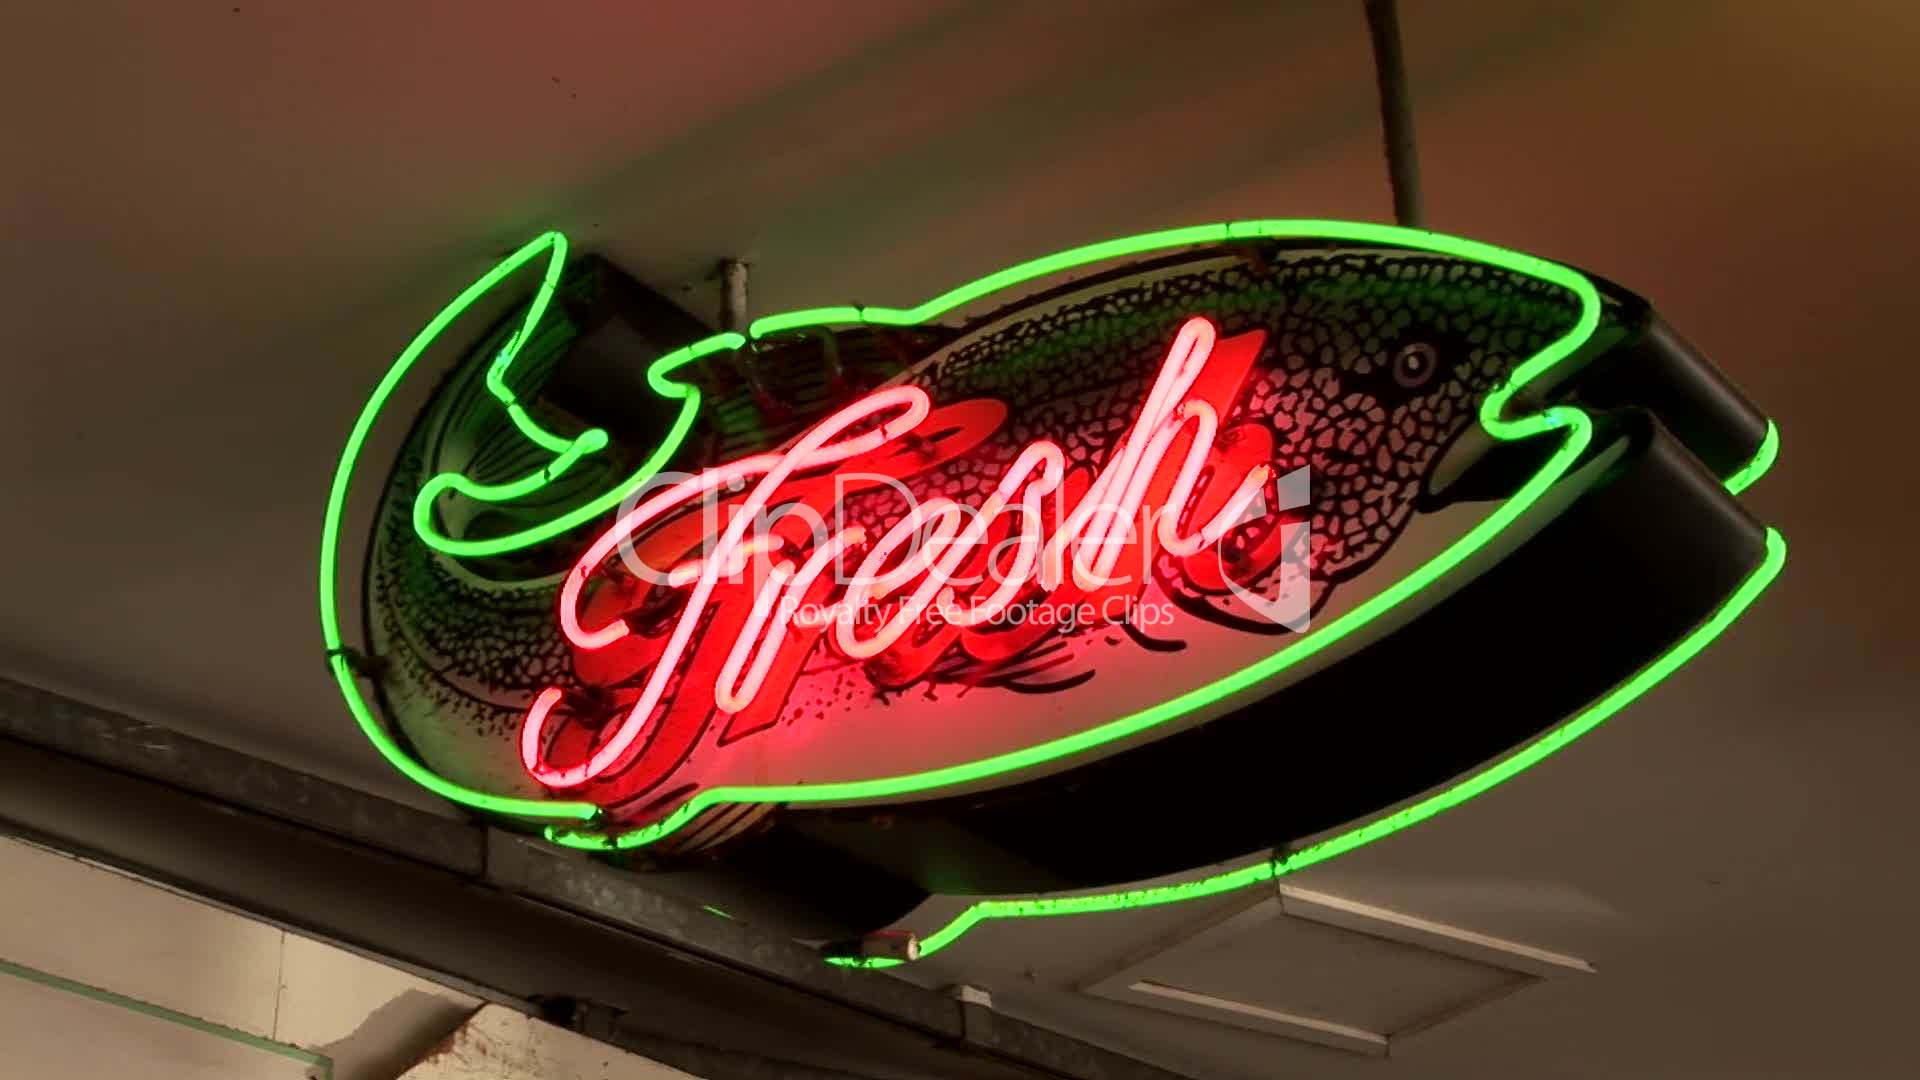 Neon Fresh Fish Sign: Royalty-free video and stock footage - photo#24